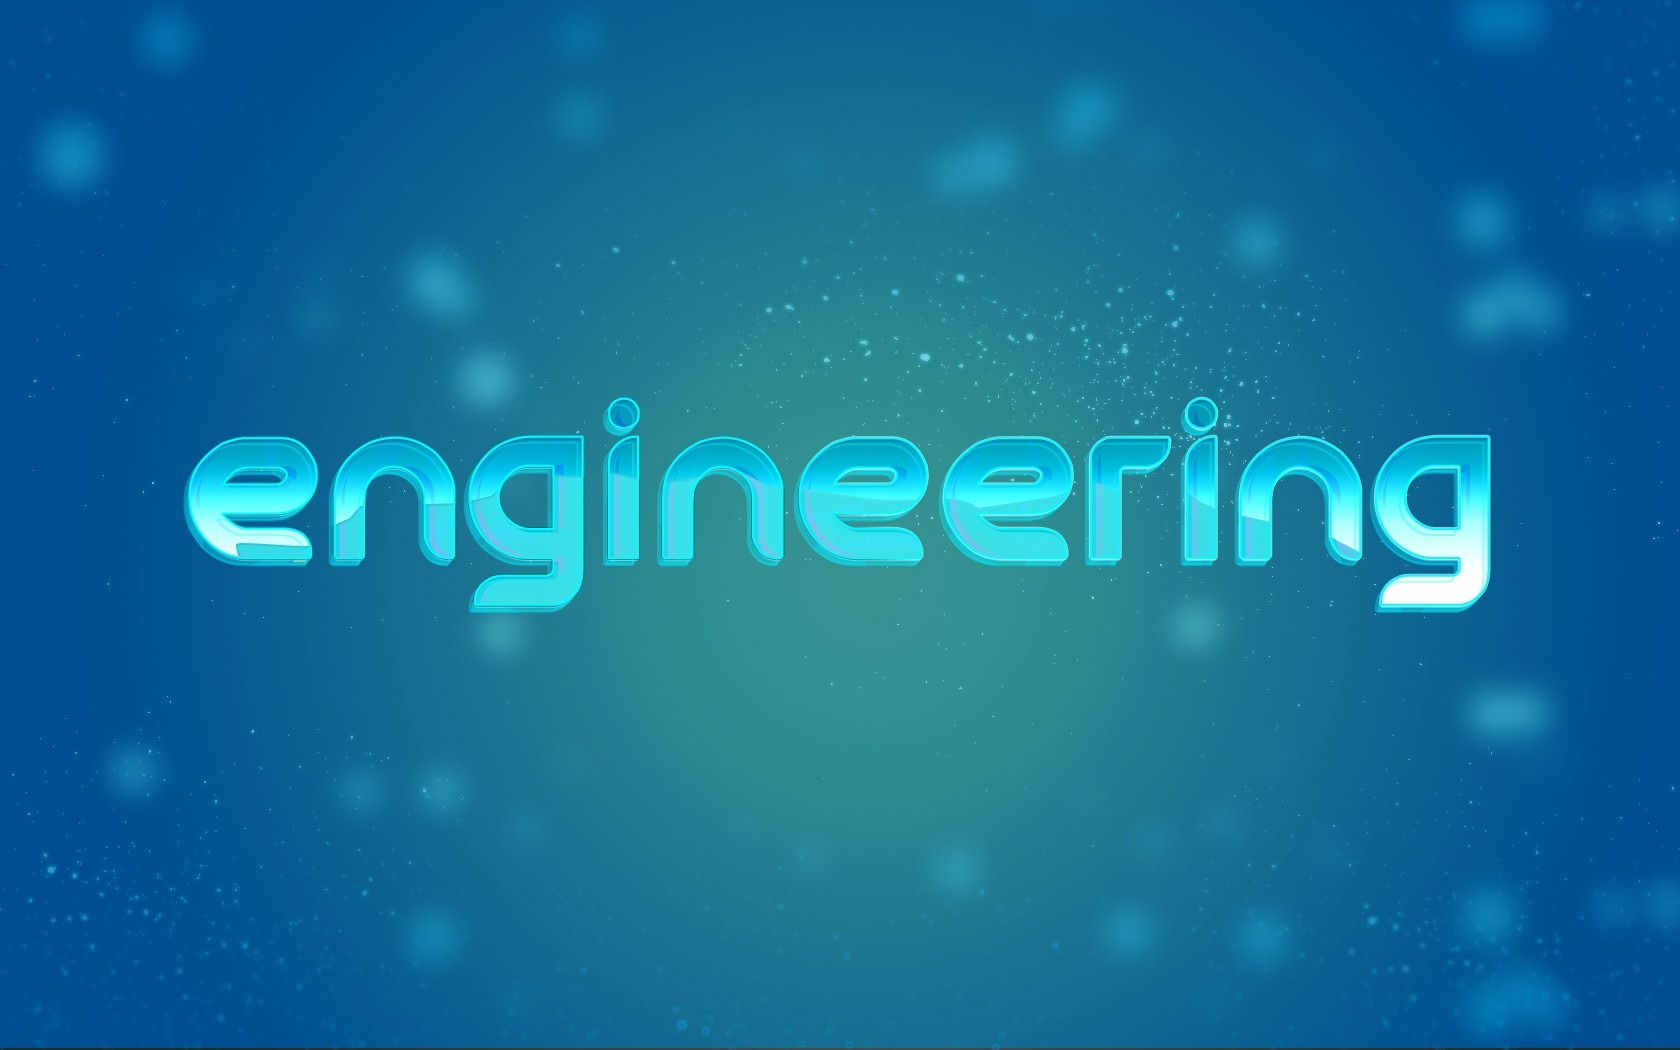 Best Electrical Engineering Design Software